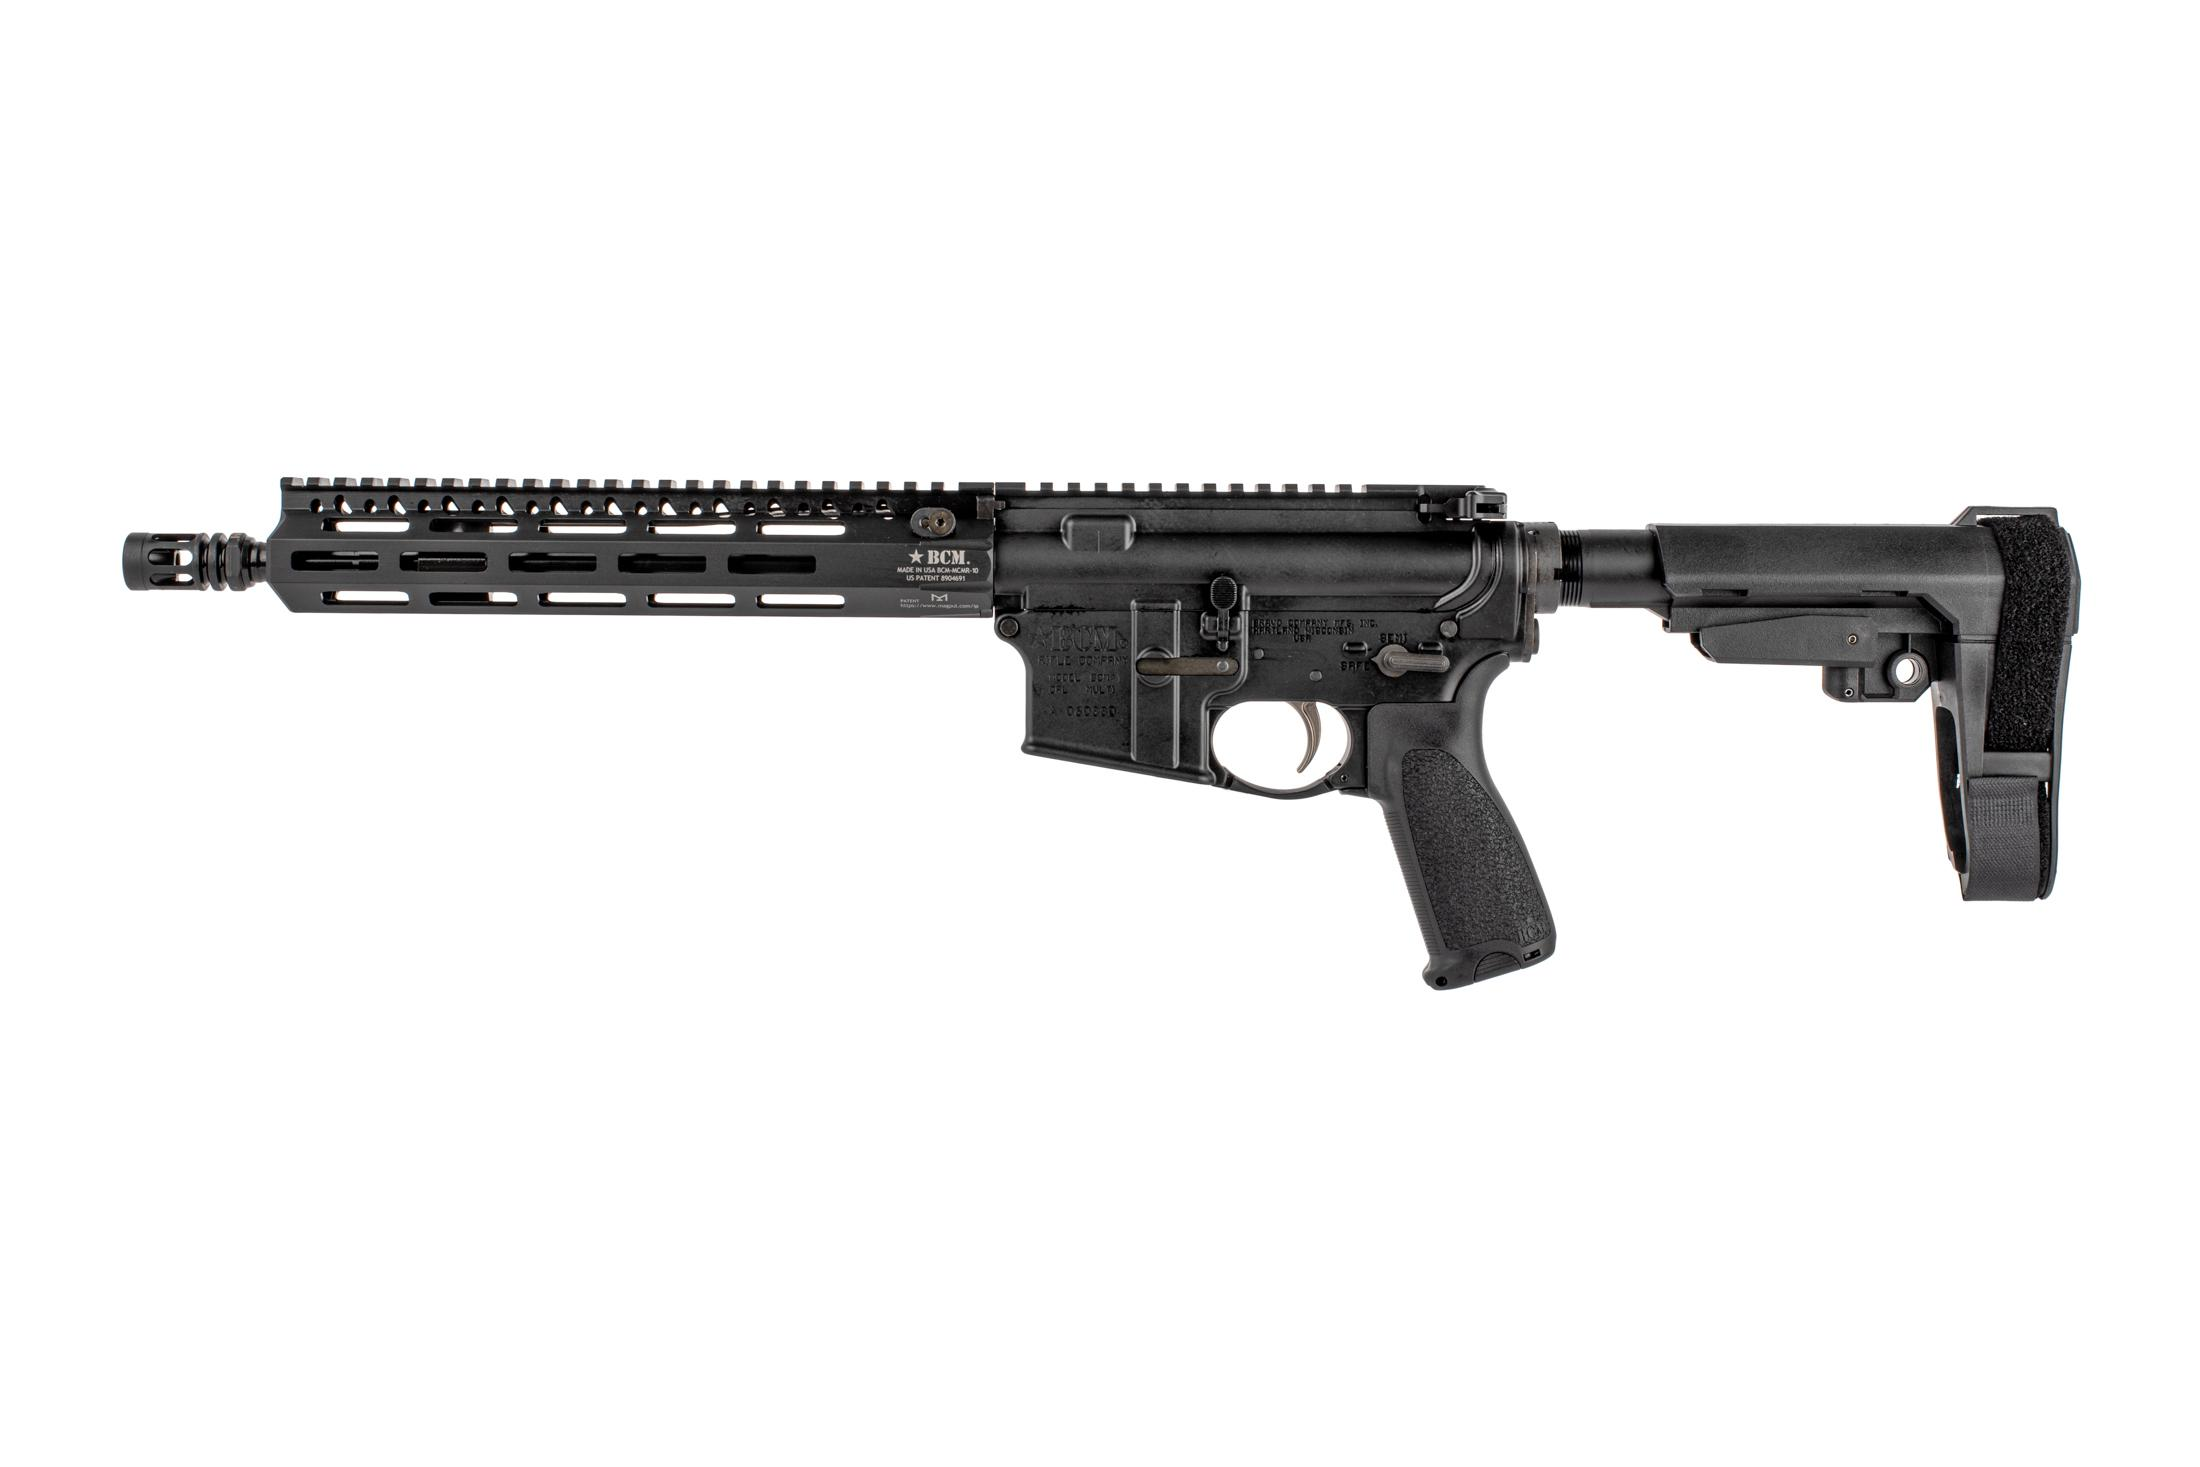 The Bravo Company USA Recce AR Pistol features an 11 inch barrel